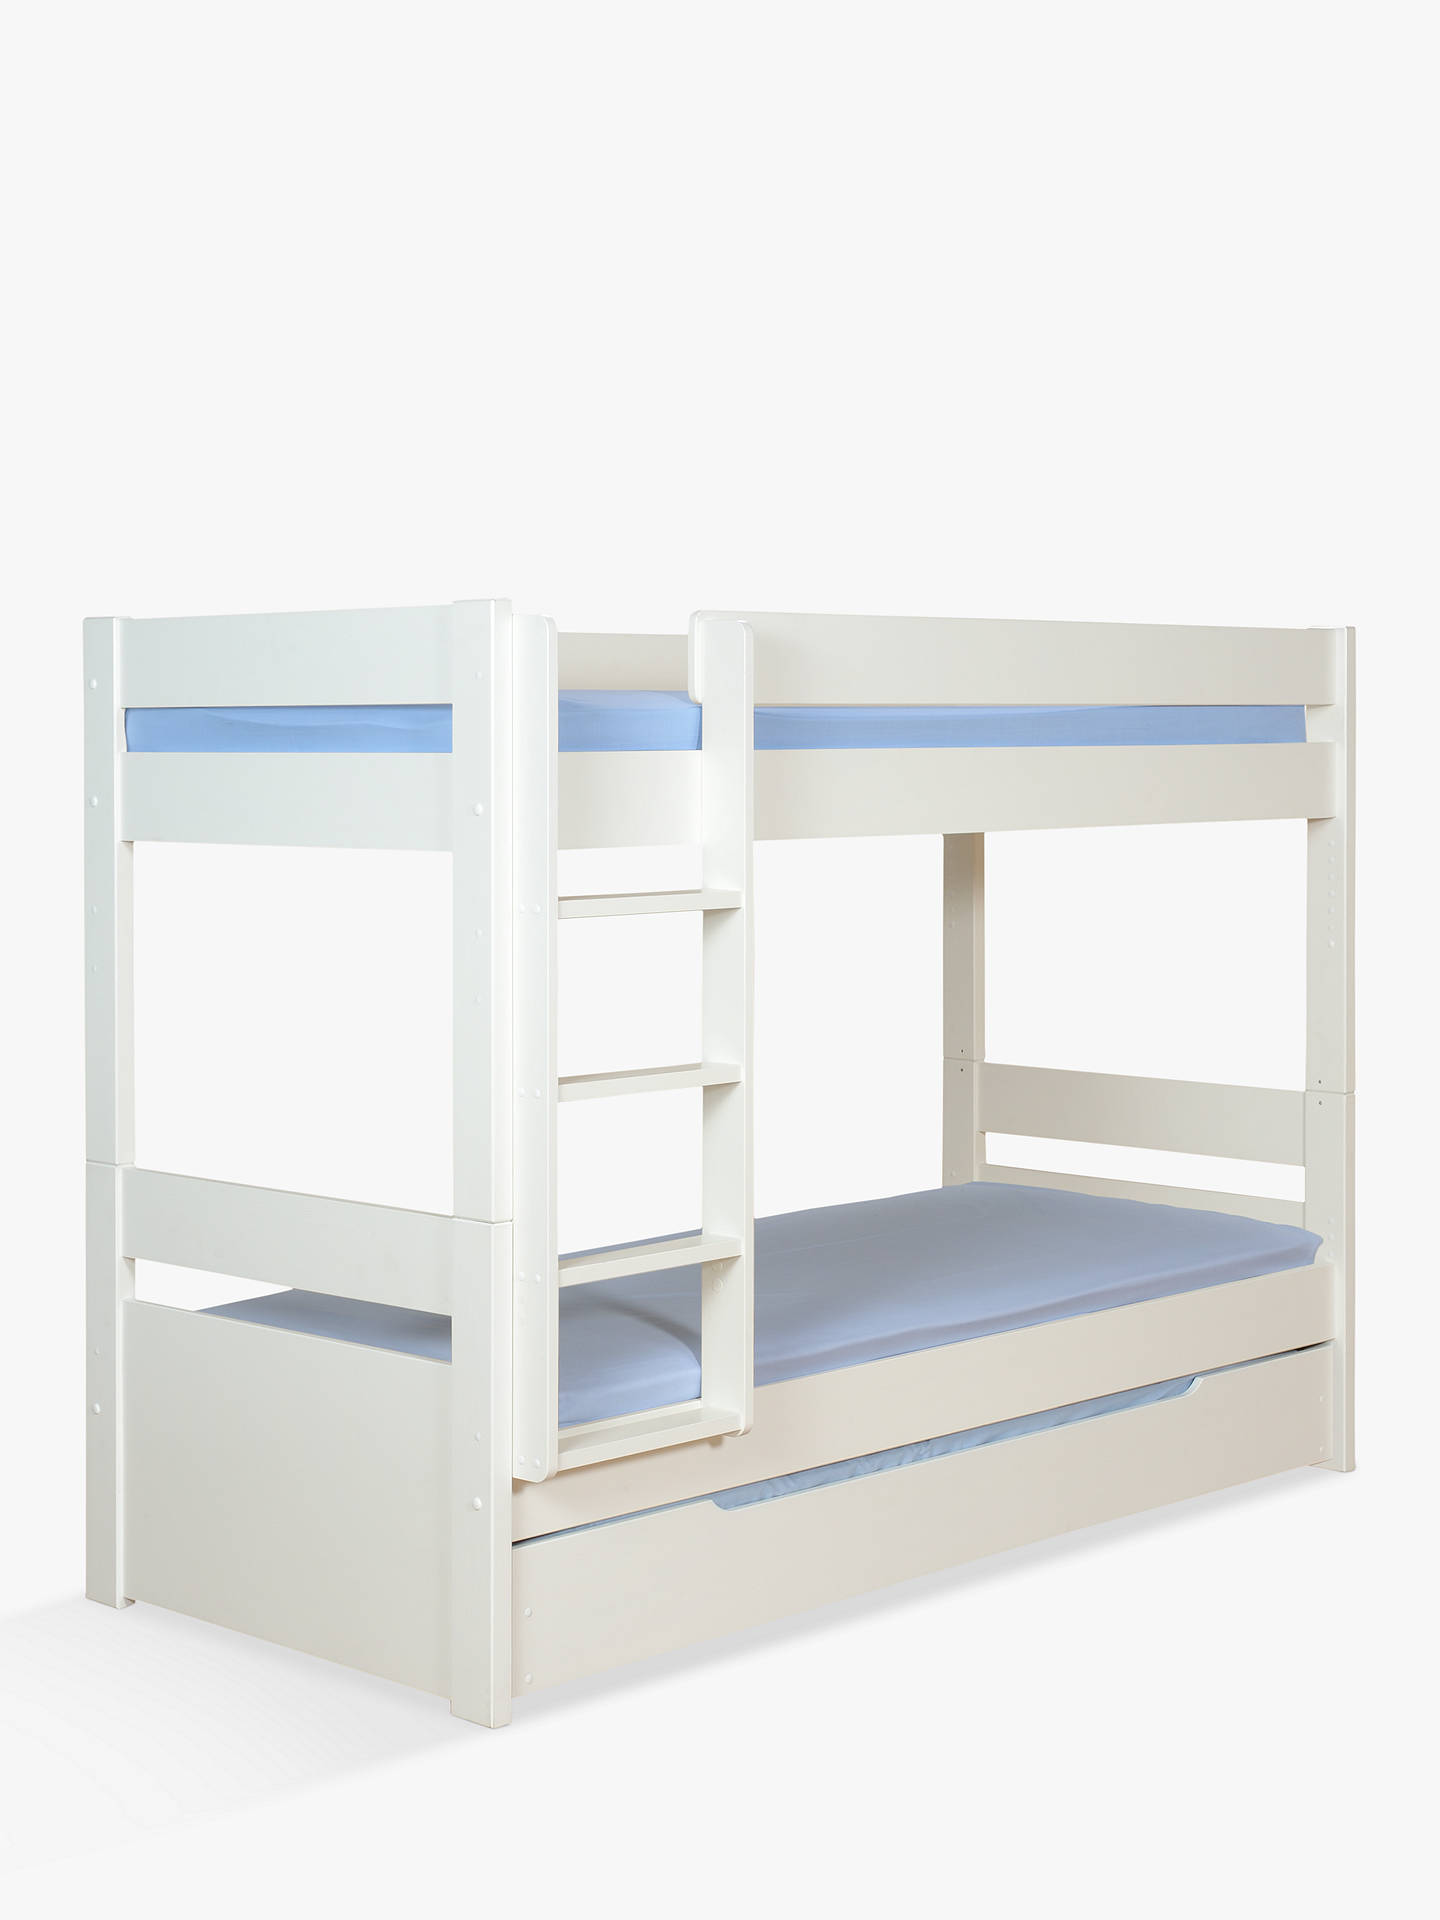 Buystompa originals multi bunk bed with trundle white online at johnlewis com